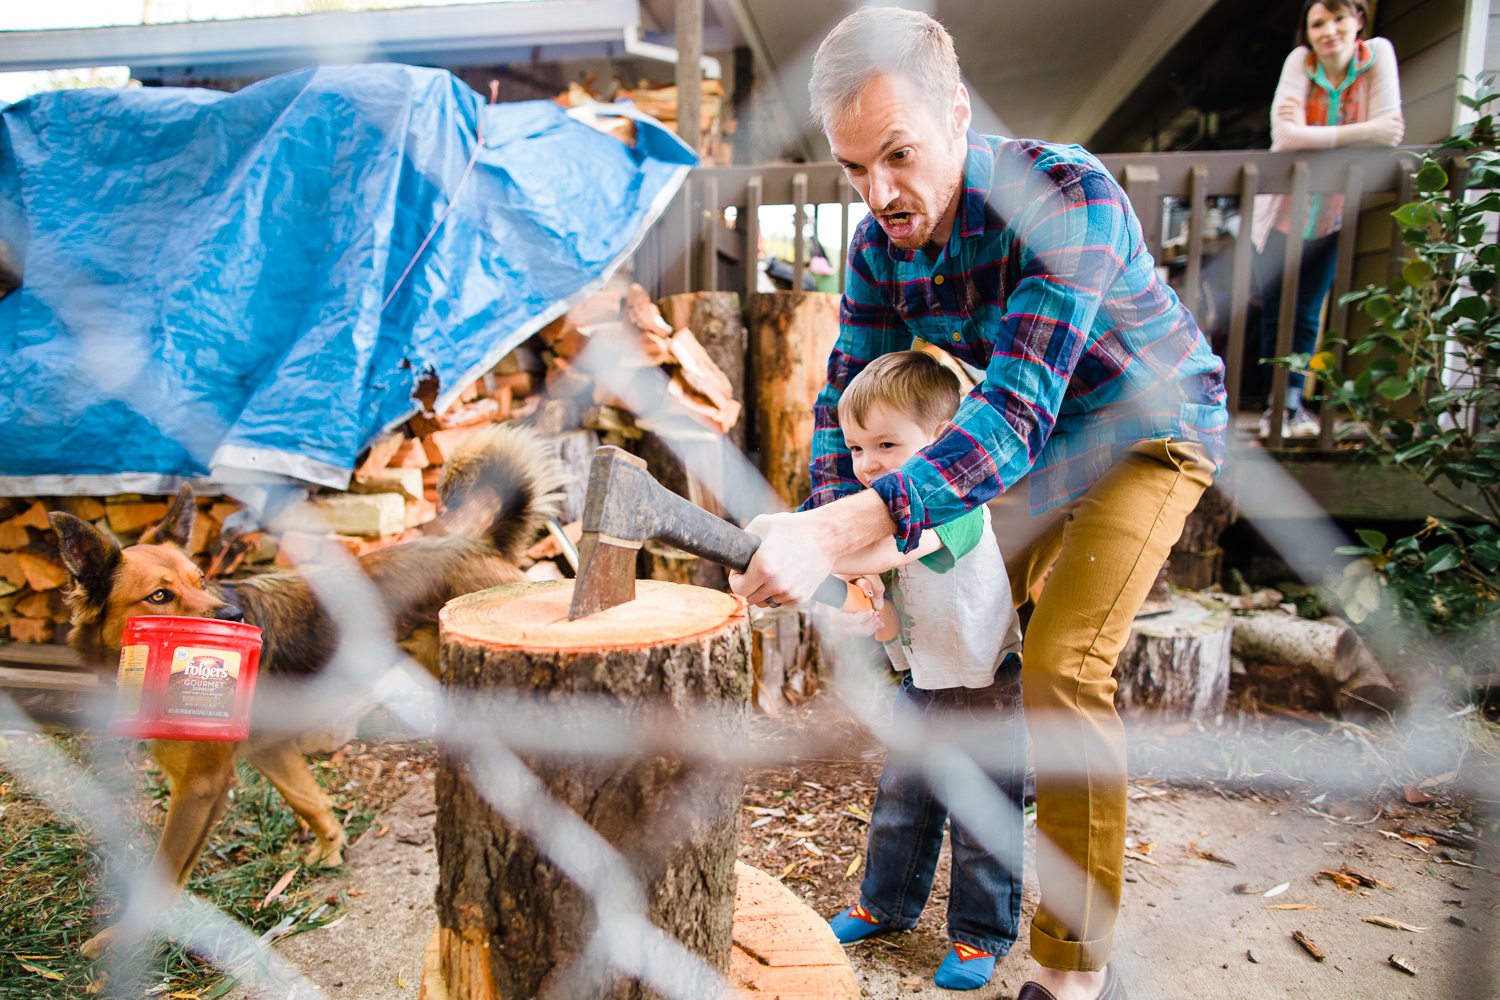 family cutting wood together